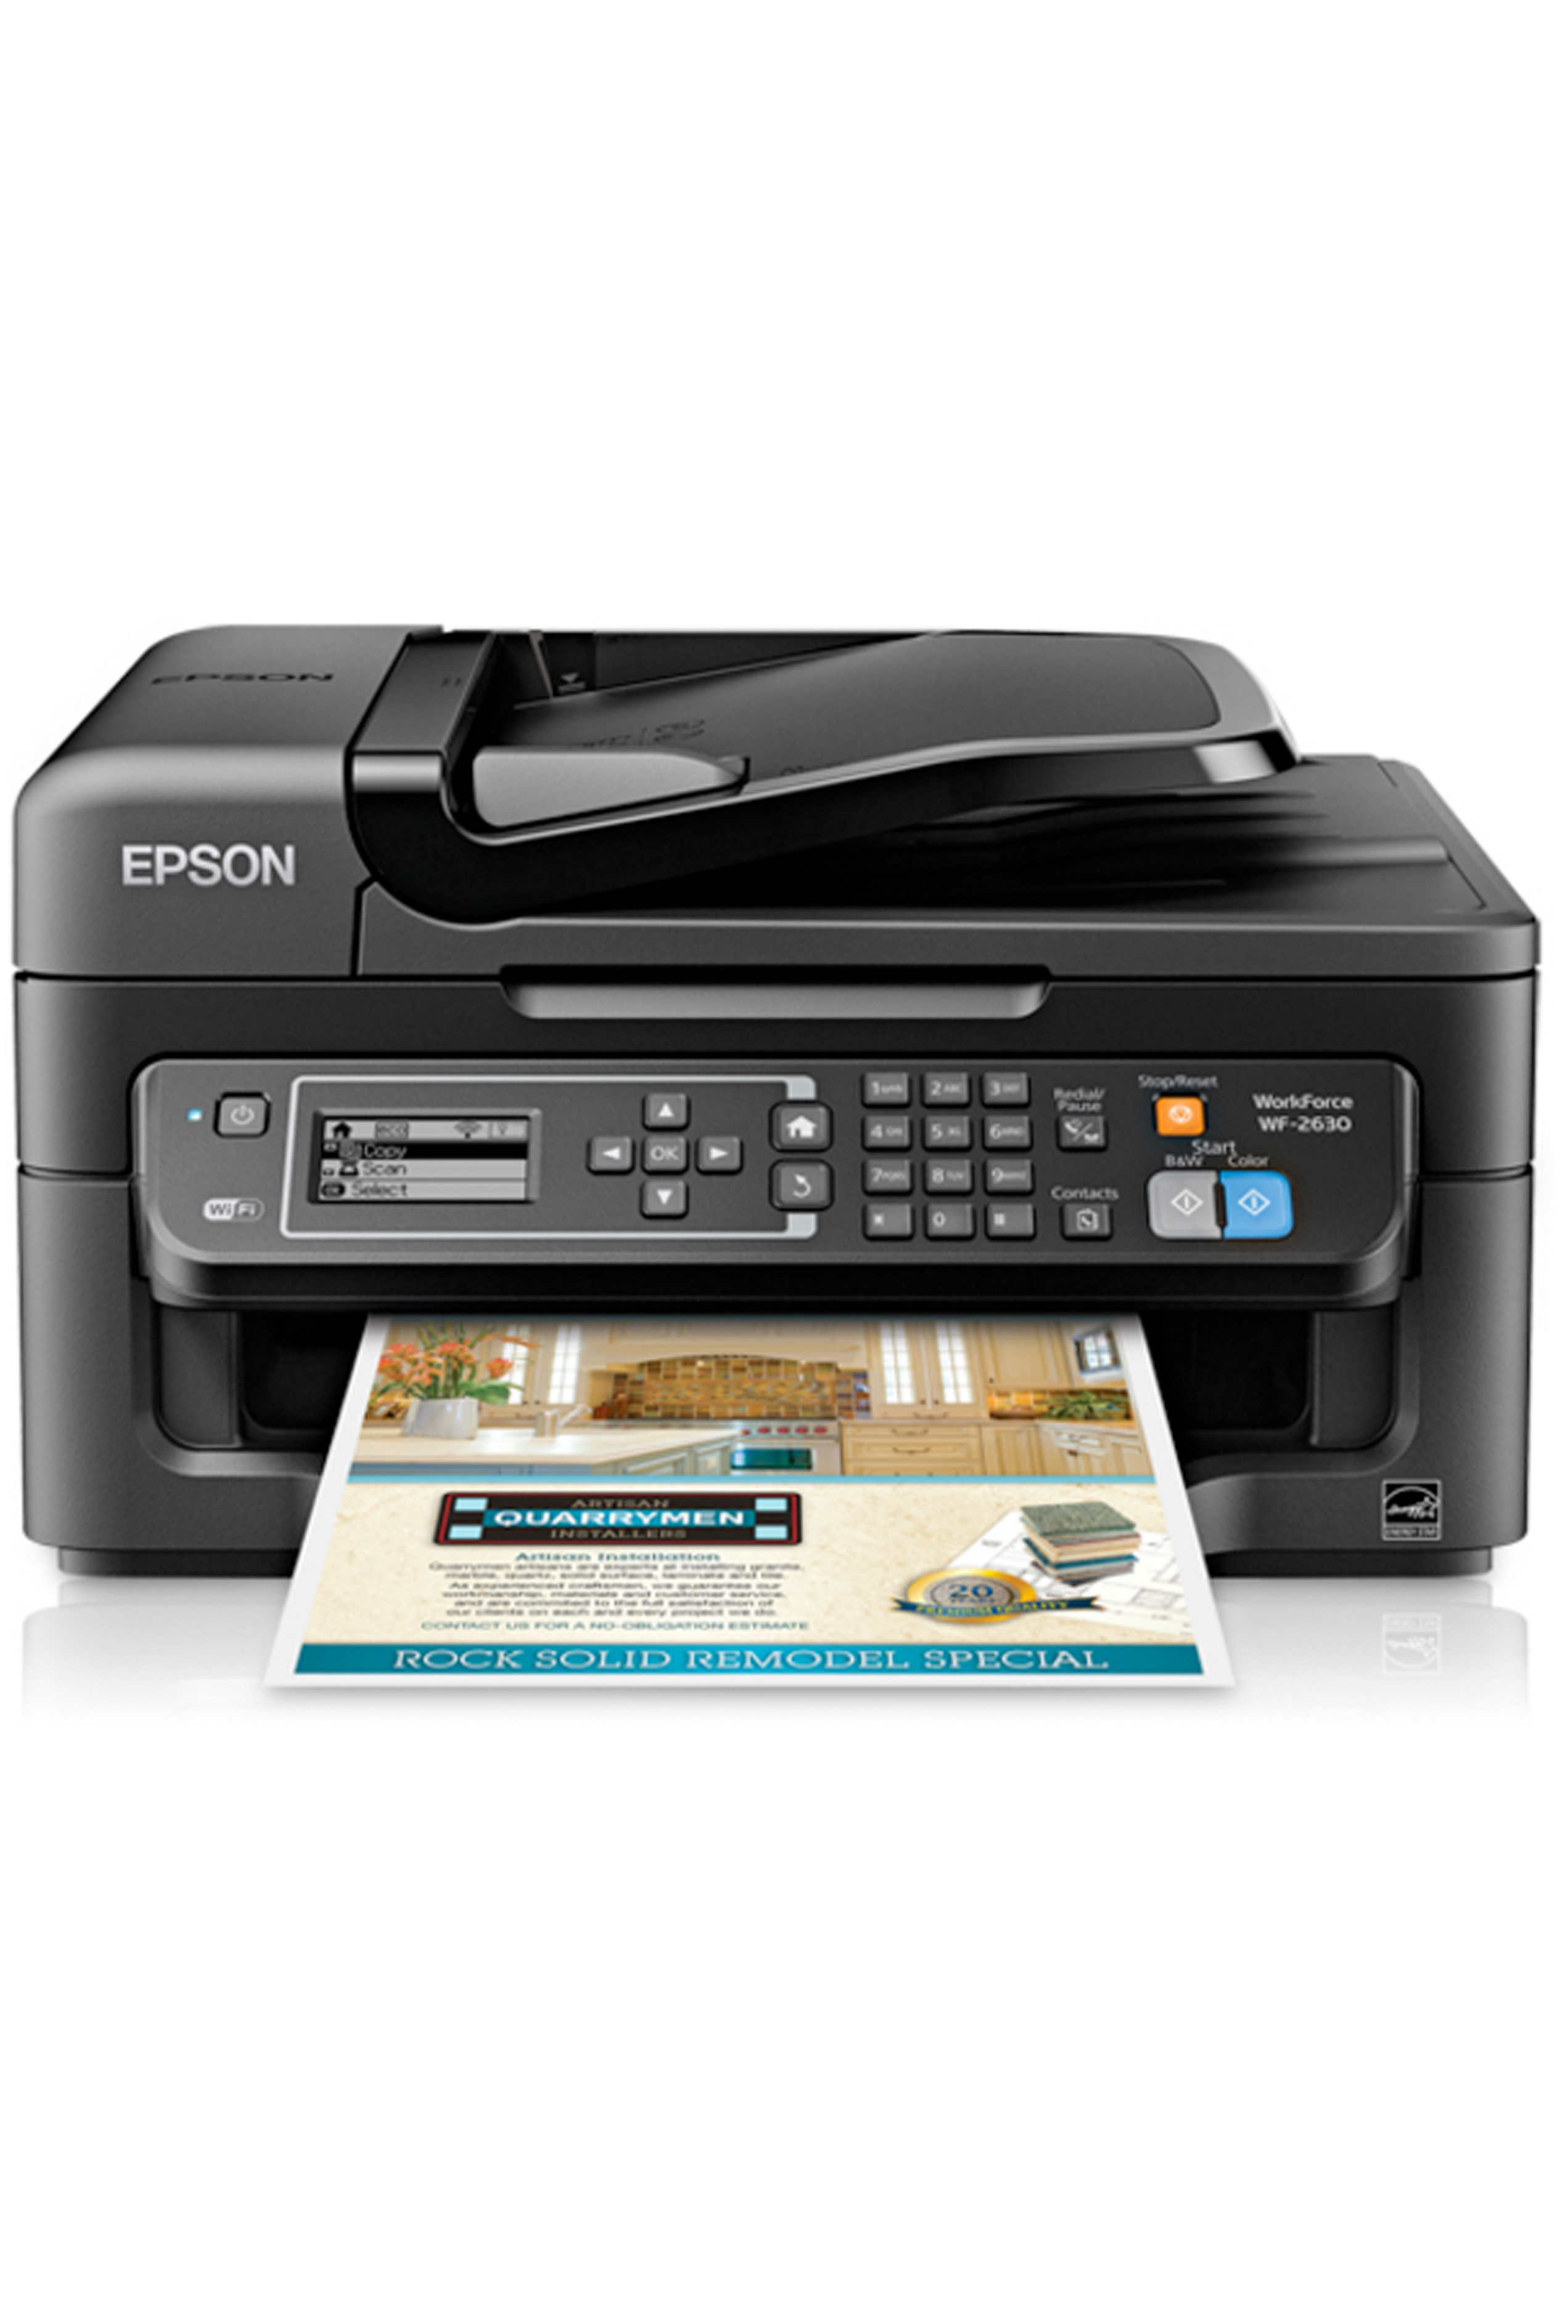 Epson WorkForce WF-2630 All-in-One Printer (9/4.7ppm)